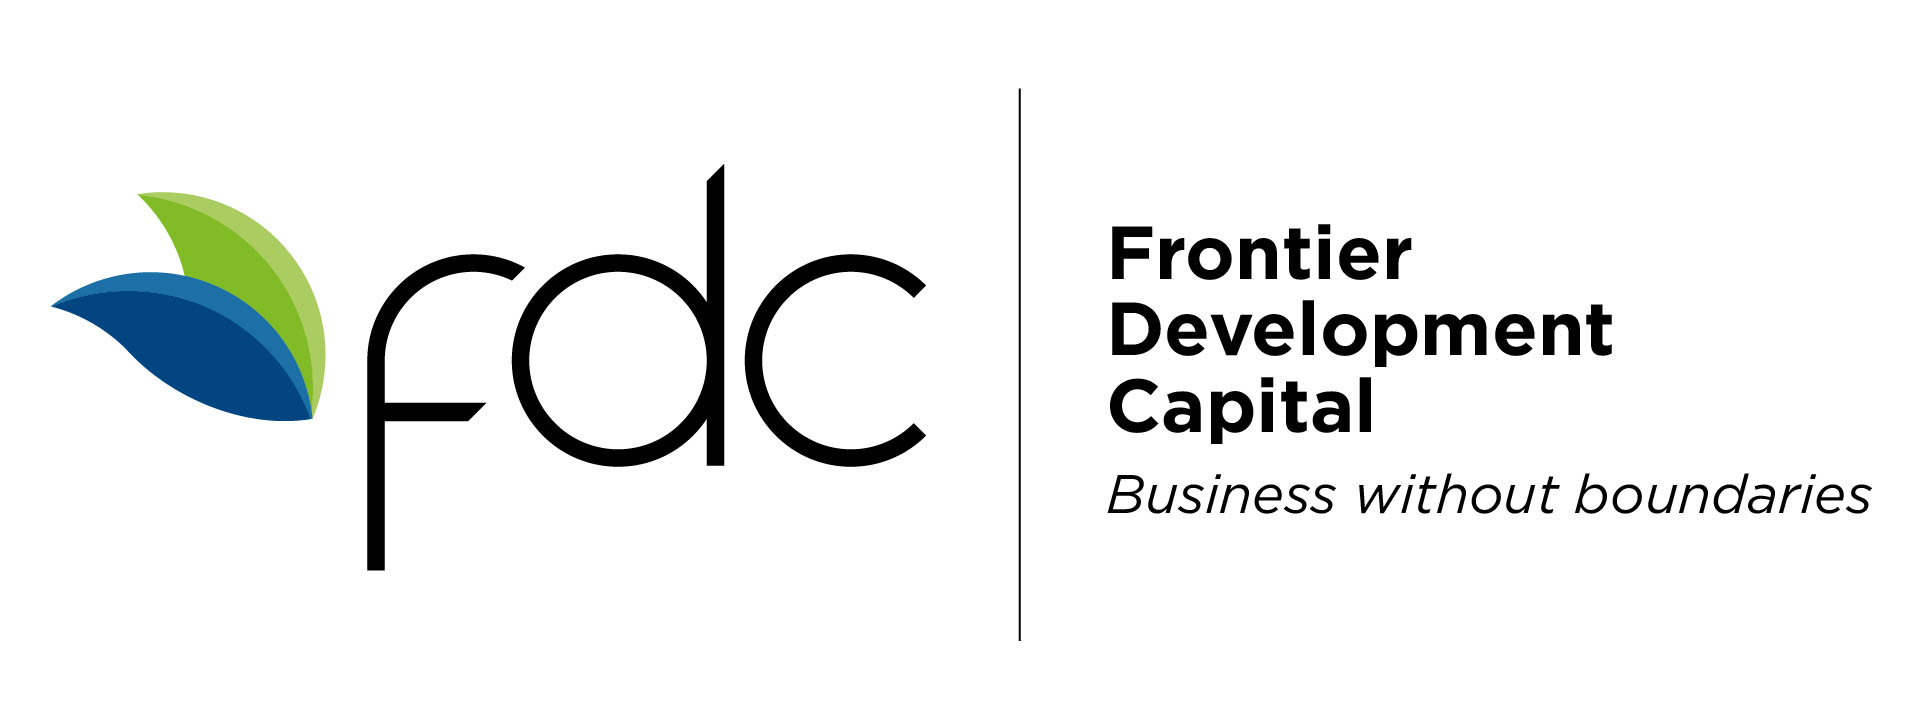 Frontier Development Capital